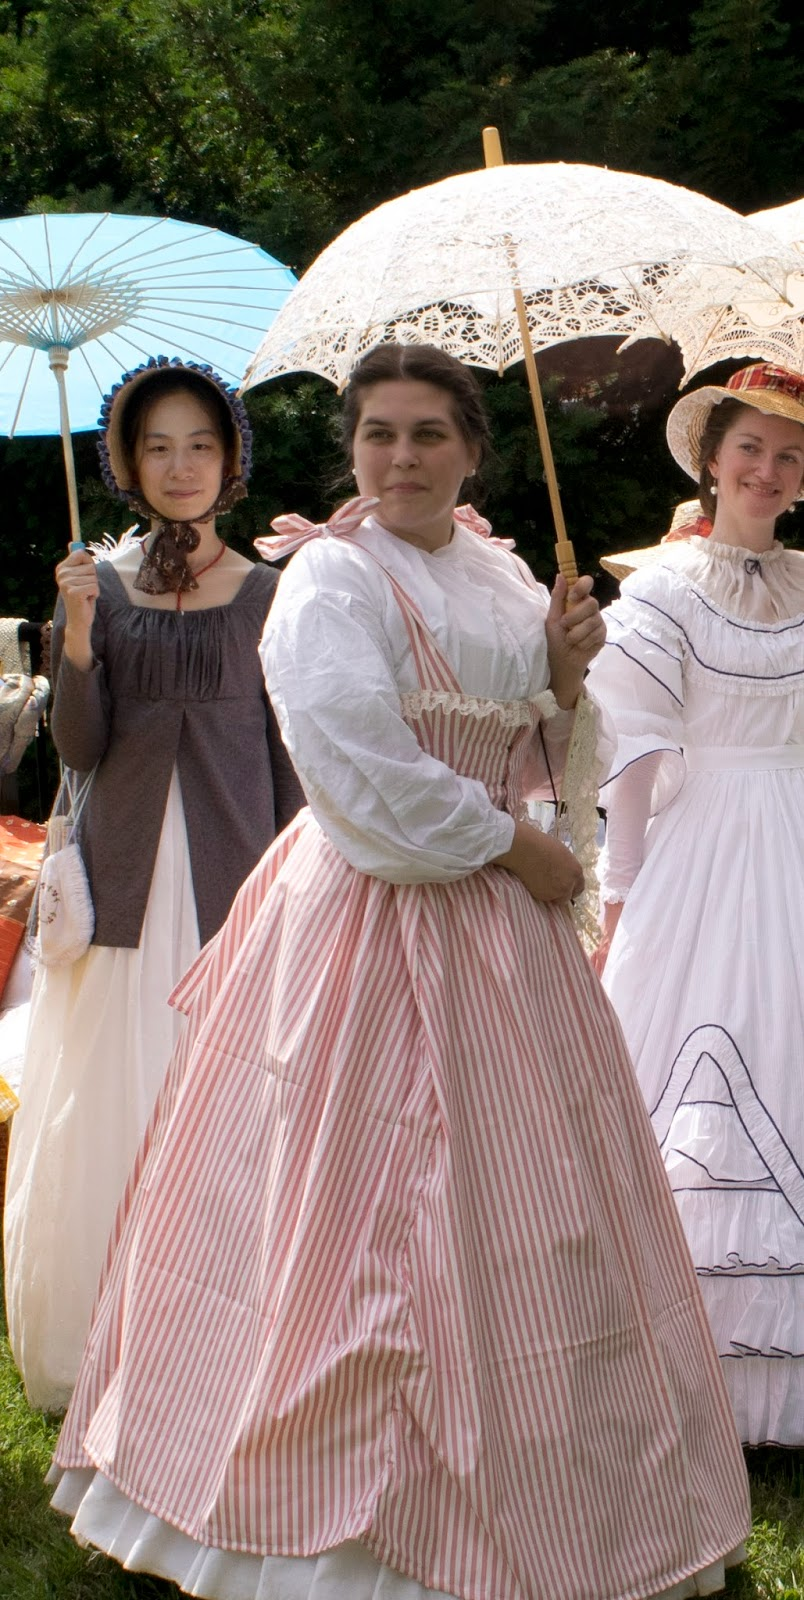 a7bbf058881 The Challenge The Politics of Fashion Fabric  Cotton Sateen Pattern  My  own! Year  1864 ish. Notions  Lace